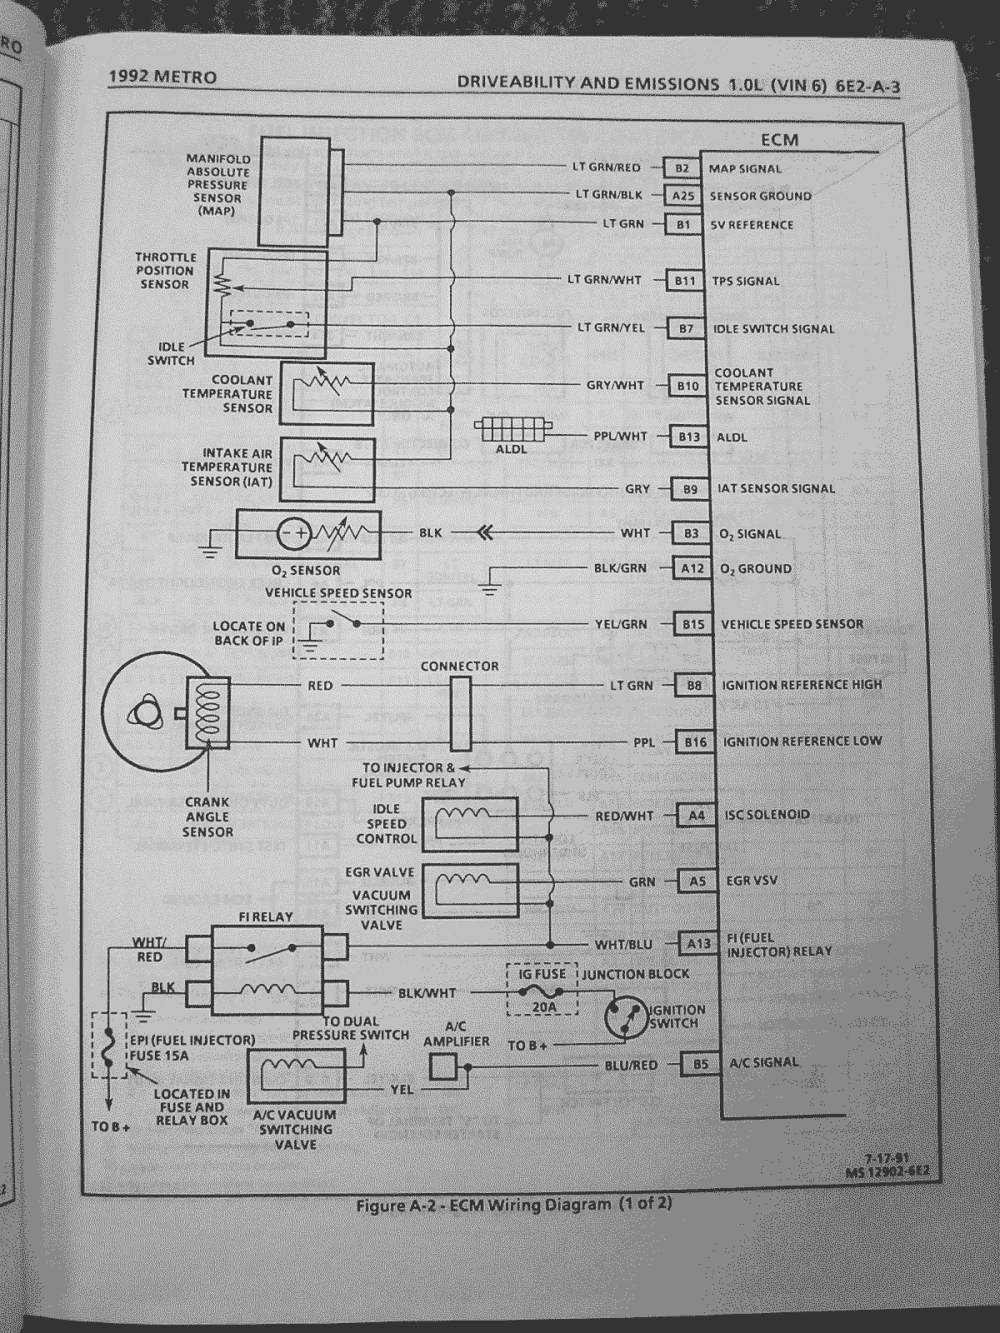 medium resolution of 1992 geo metro wiring diagram wiring diagrams schema rh 10 verena hoegerl de 1993 chevy 1500 wiring diagram 2001 chevy s10 wiring diagram